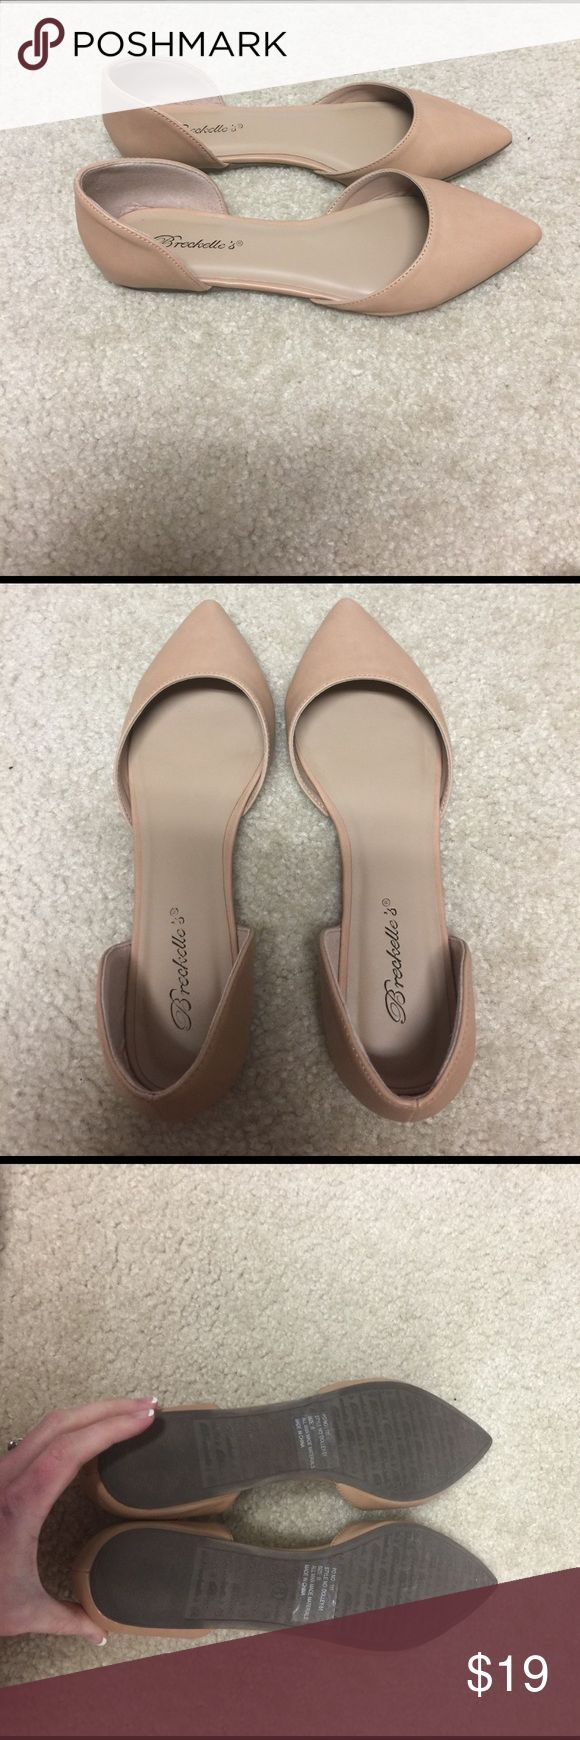 Nude flats from Red Dress Boutique Only worn once. Perfect condition. Too big for me Shoes